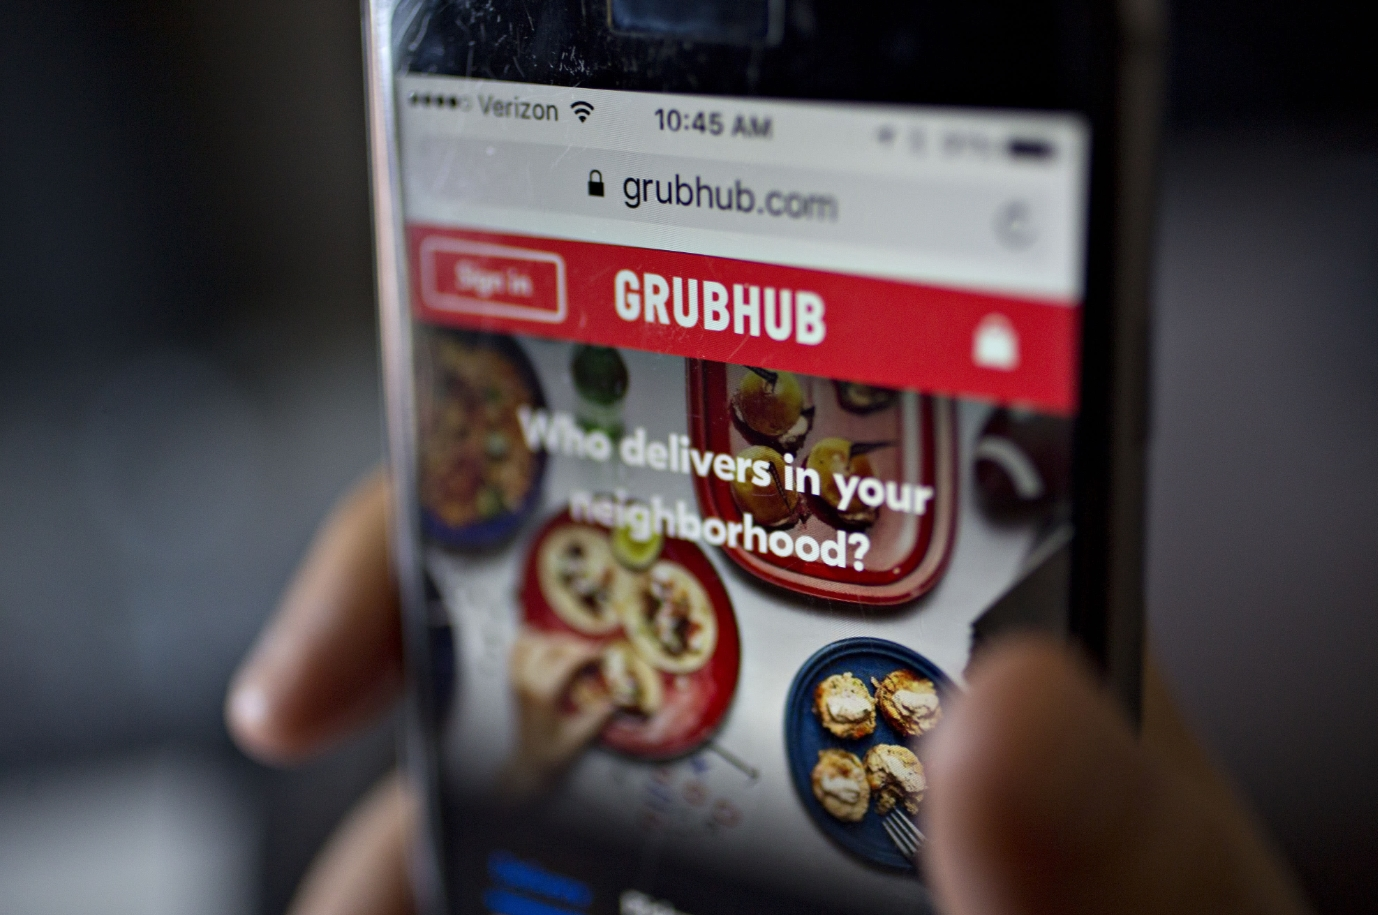 Grubhub - Best Food Delivery Apps for Android & iPhone Devices